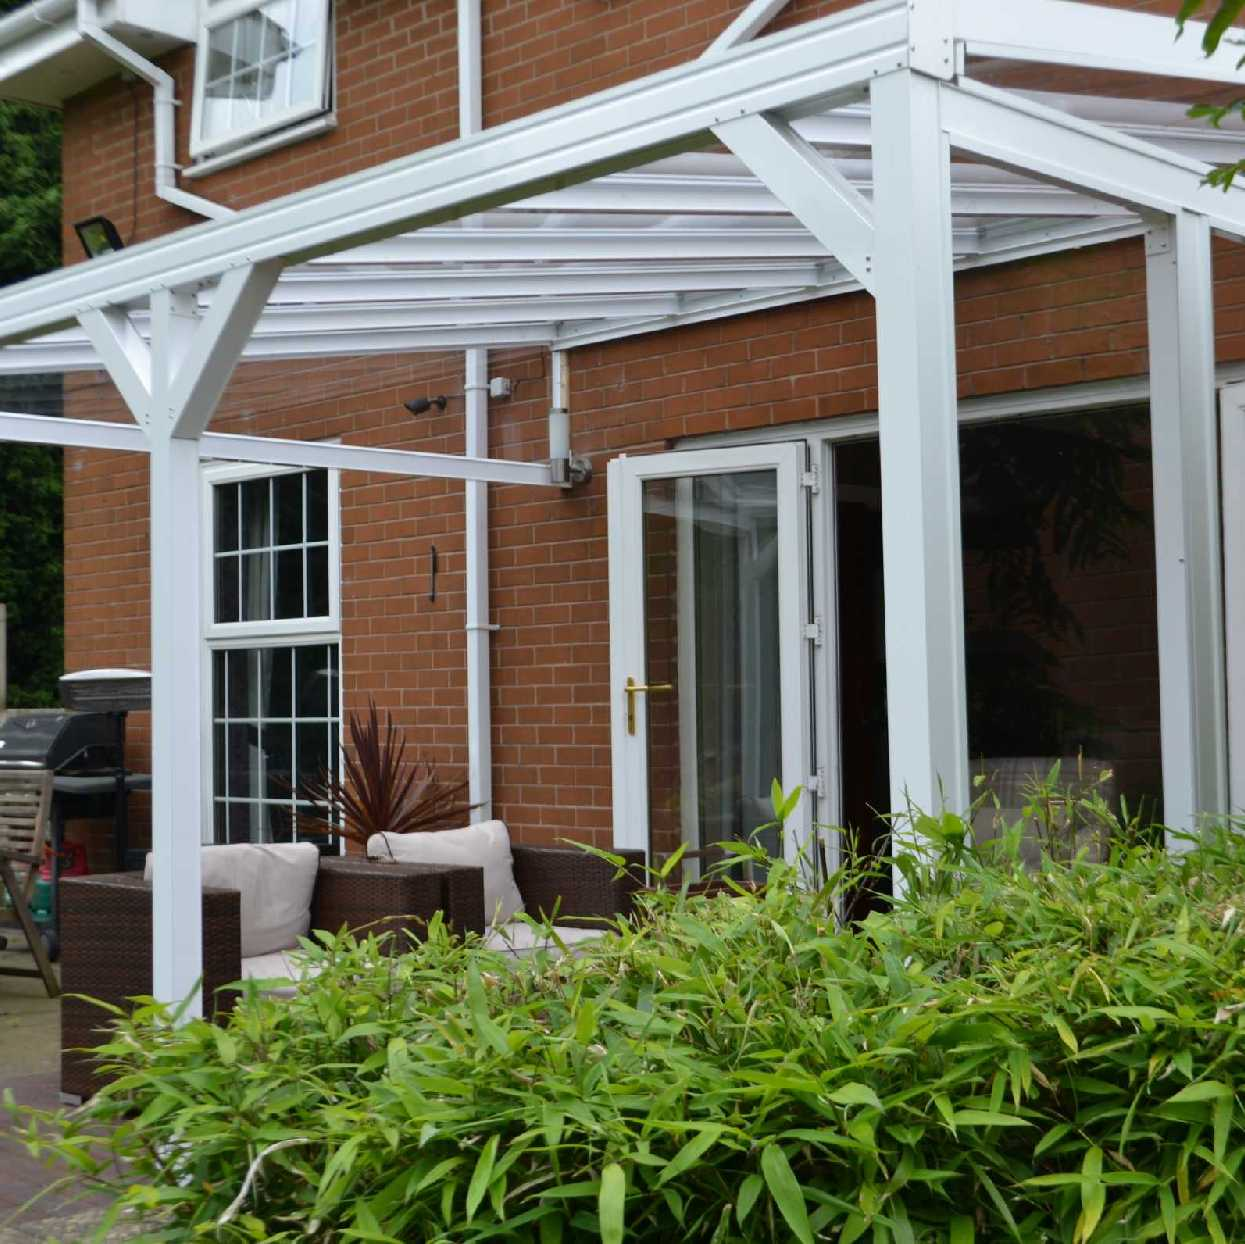 Omega Smart White Lean-To Canopy UNGLAZED for 6mm Glazing - 6.3m (W) x 1.5m (P), (4) Supporting Posts from Omega Build